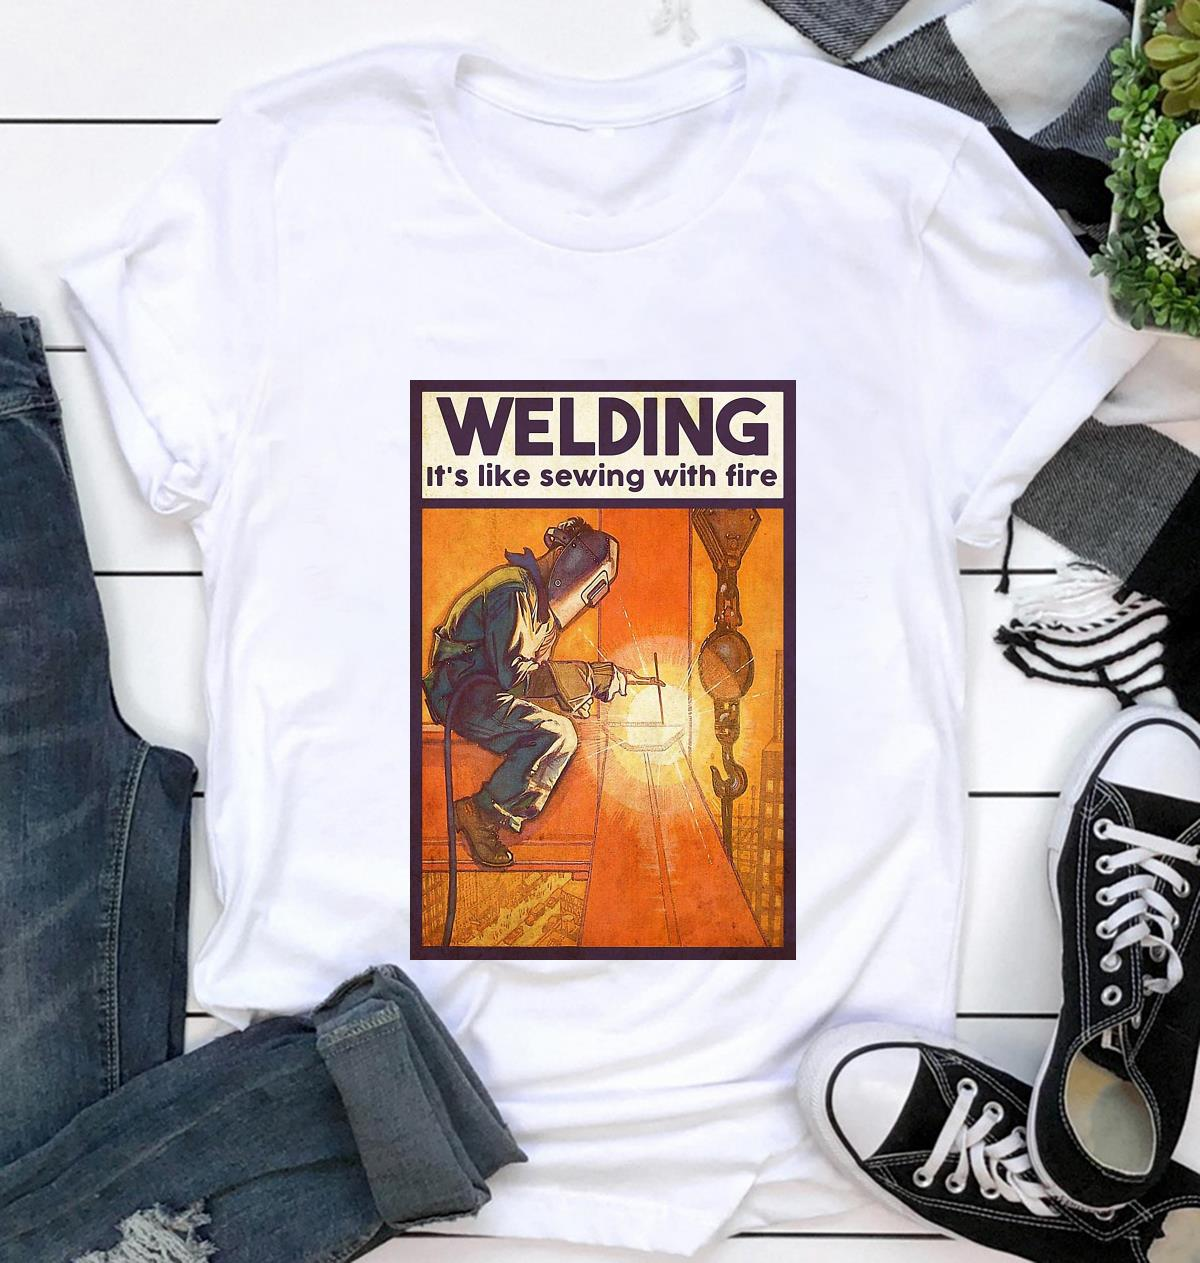 Welding is like sewing with fire poster t-shirt